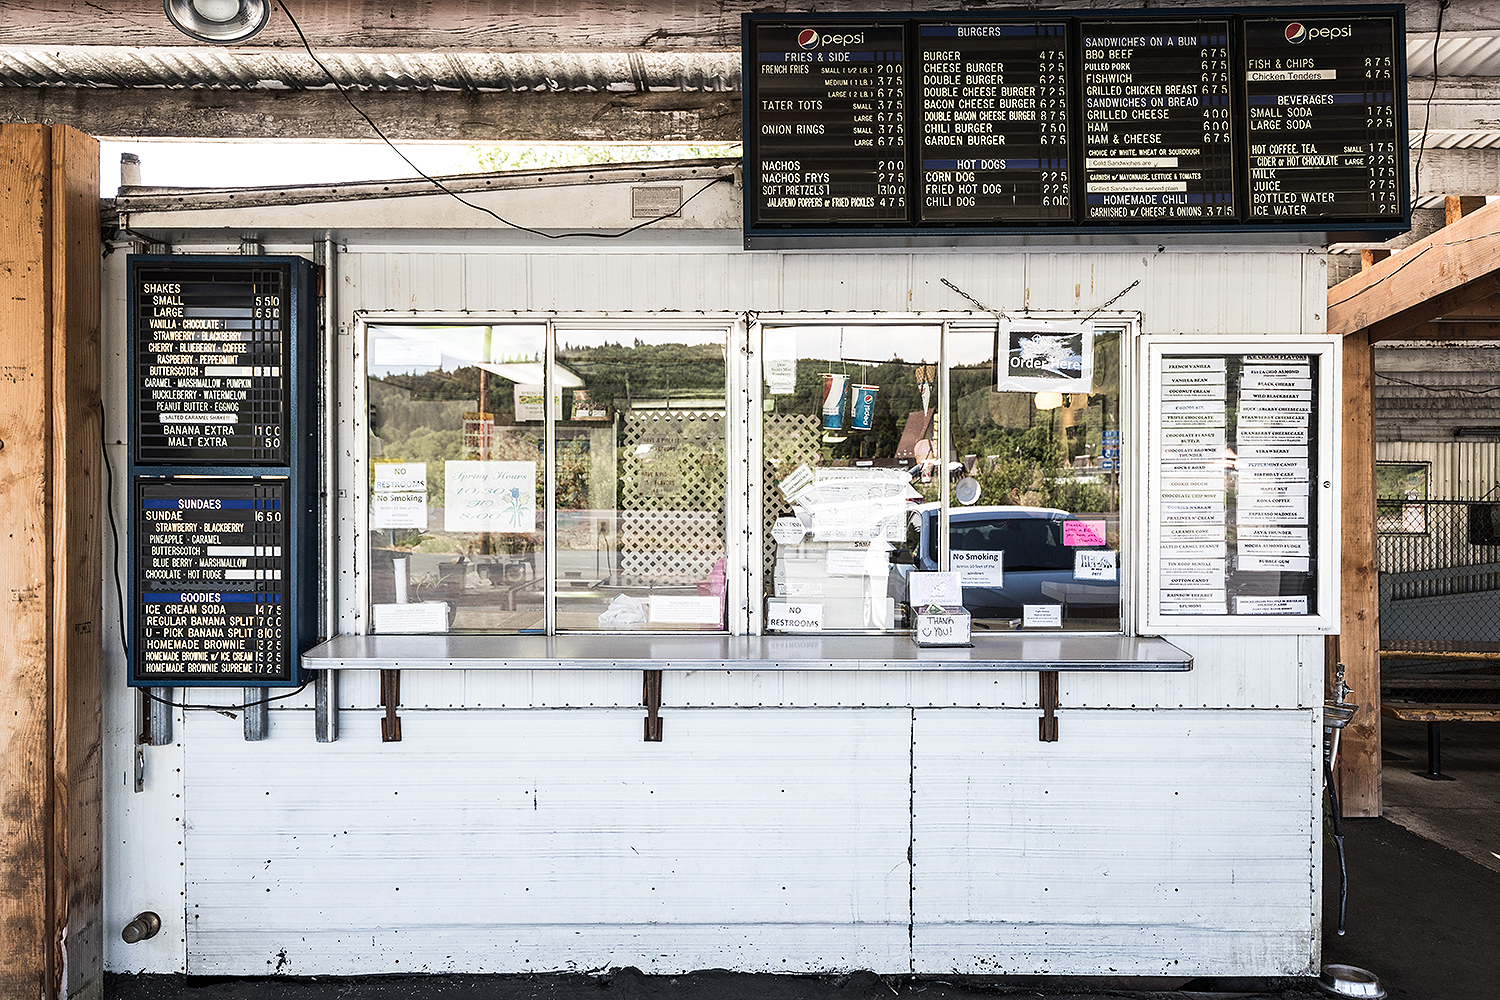 Don't be fooled by K&R's unassuming facade. It's hiding tasty treasures.